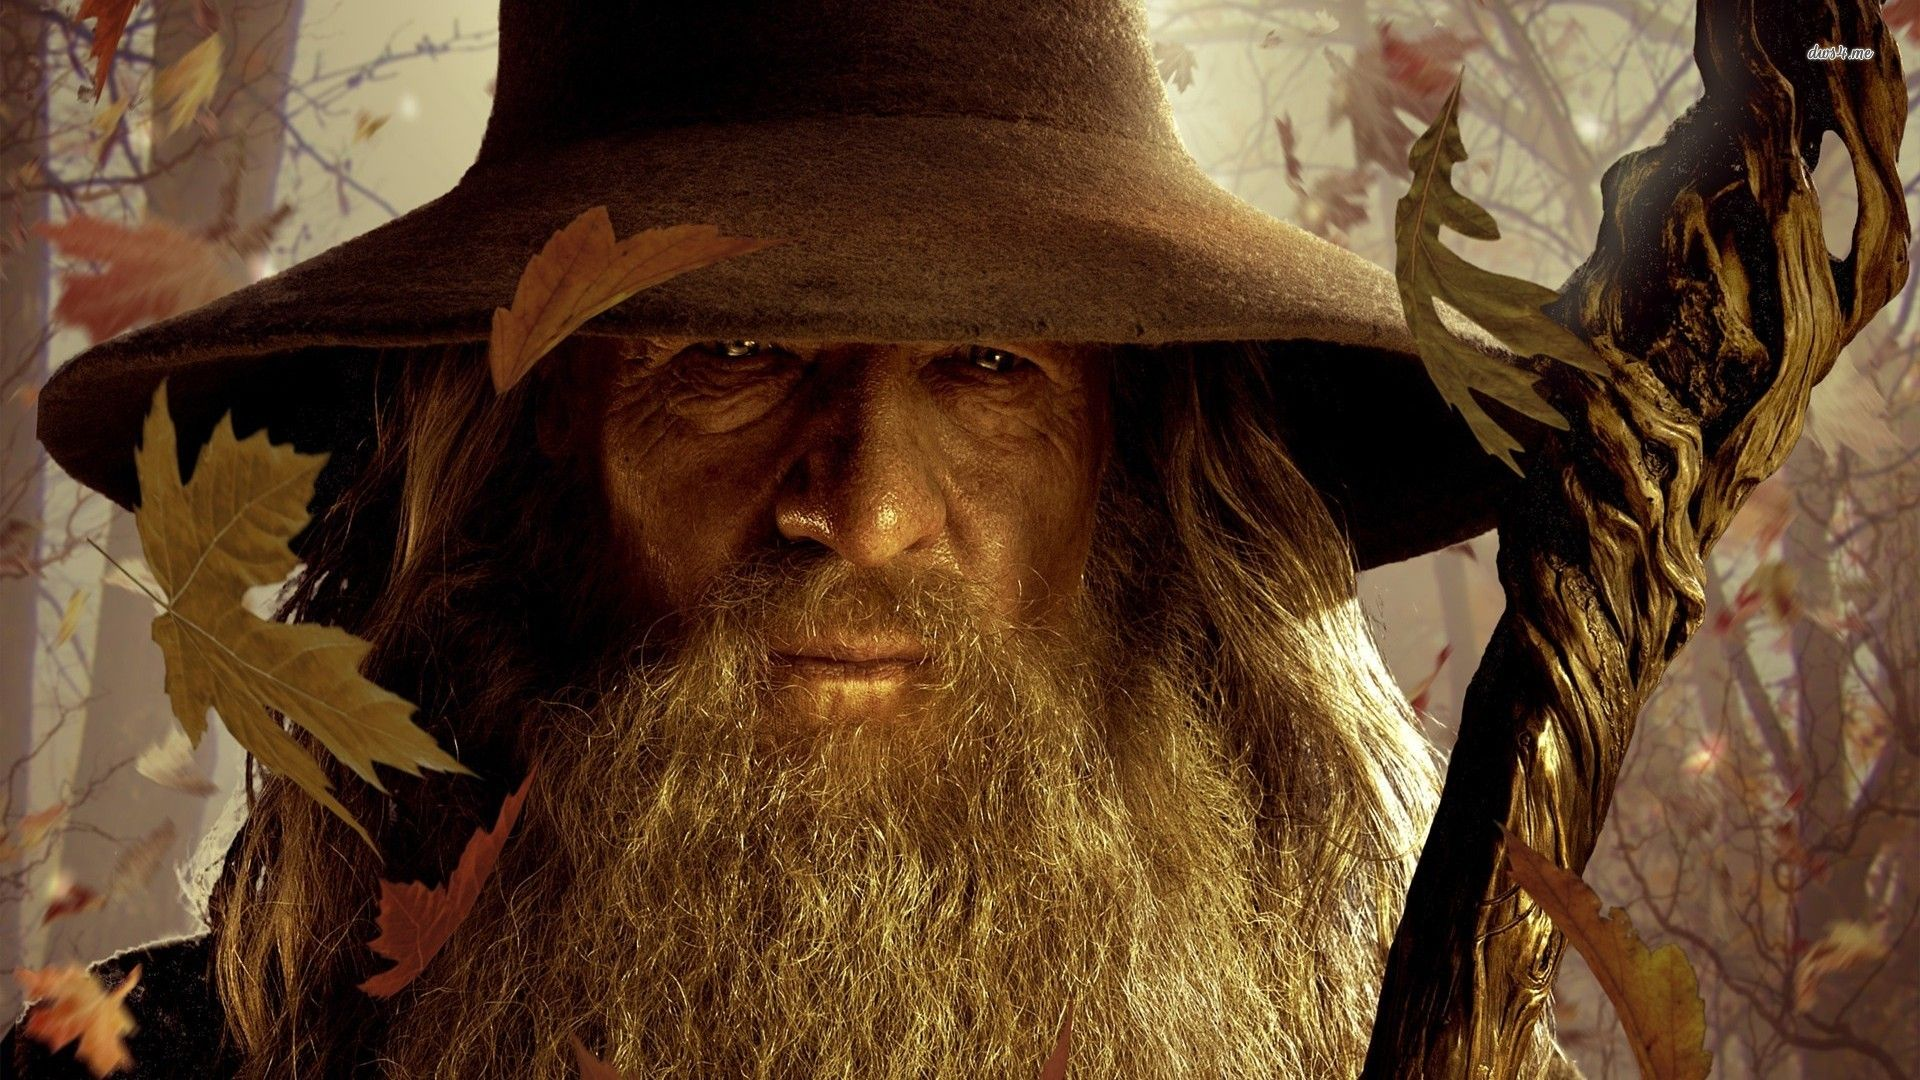 Movie The Lord of the Rings Gandalf LOTR Wallpaper HD 15